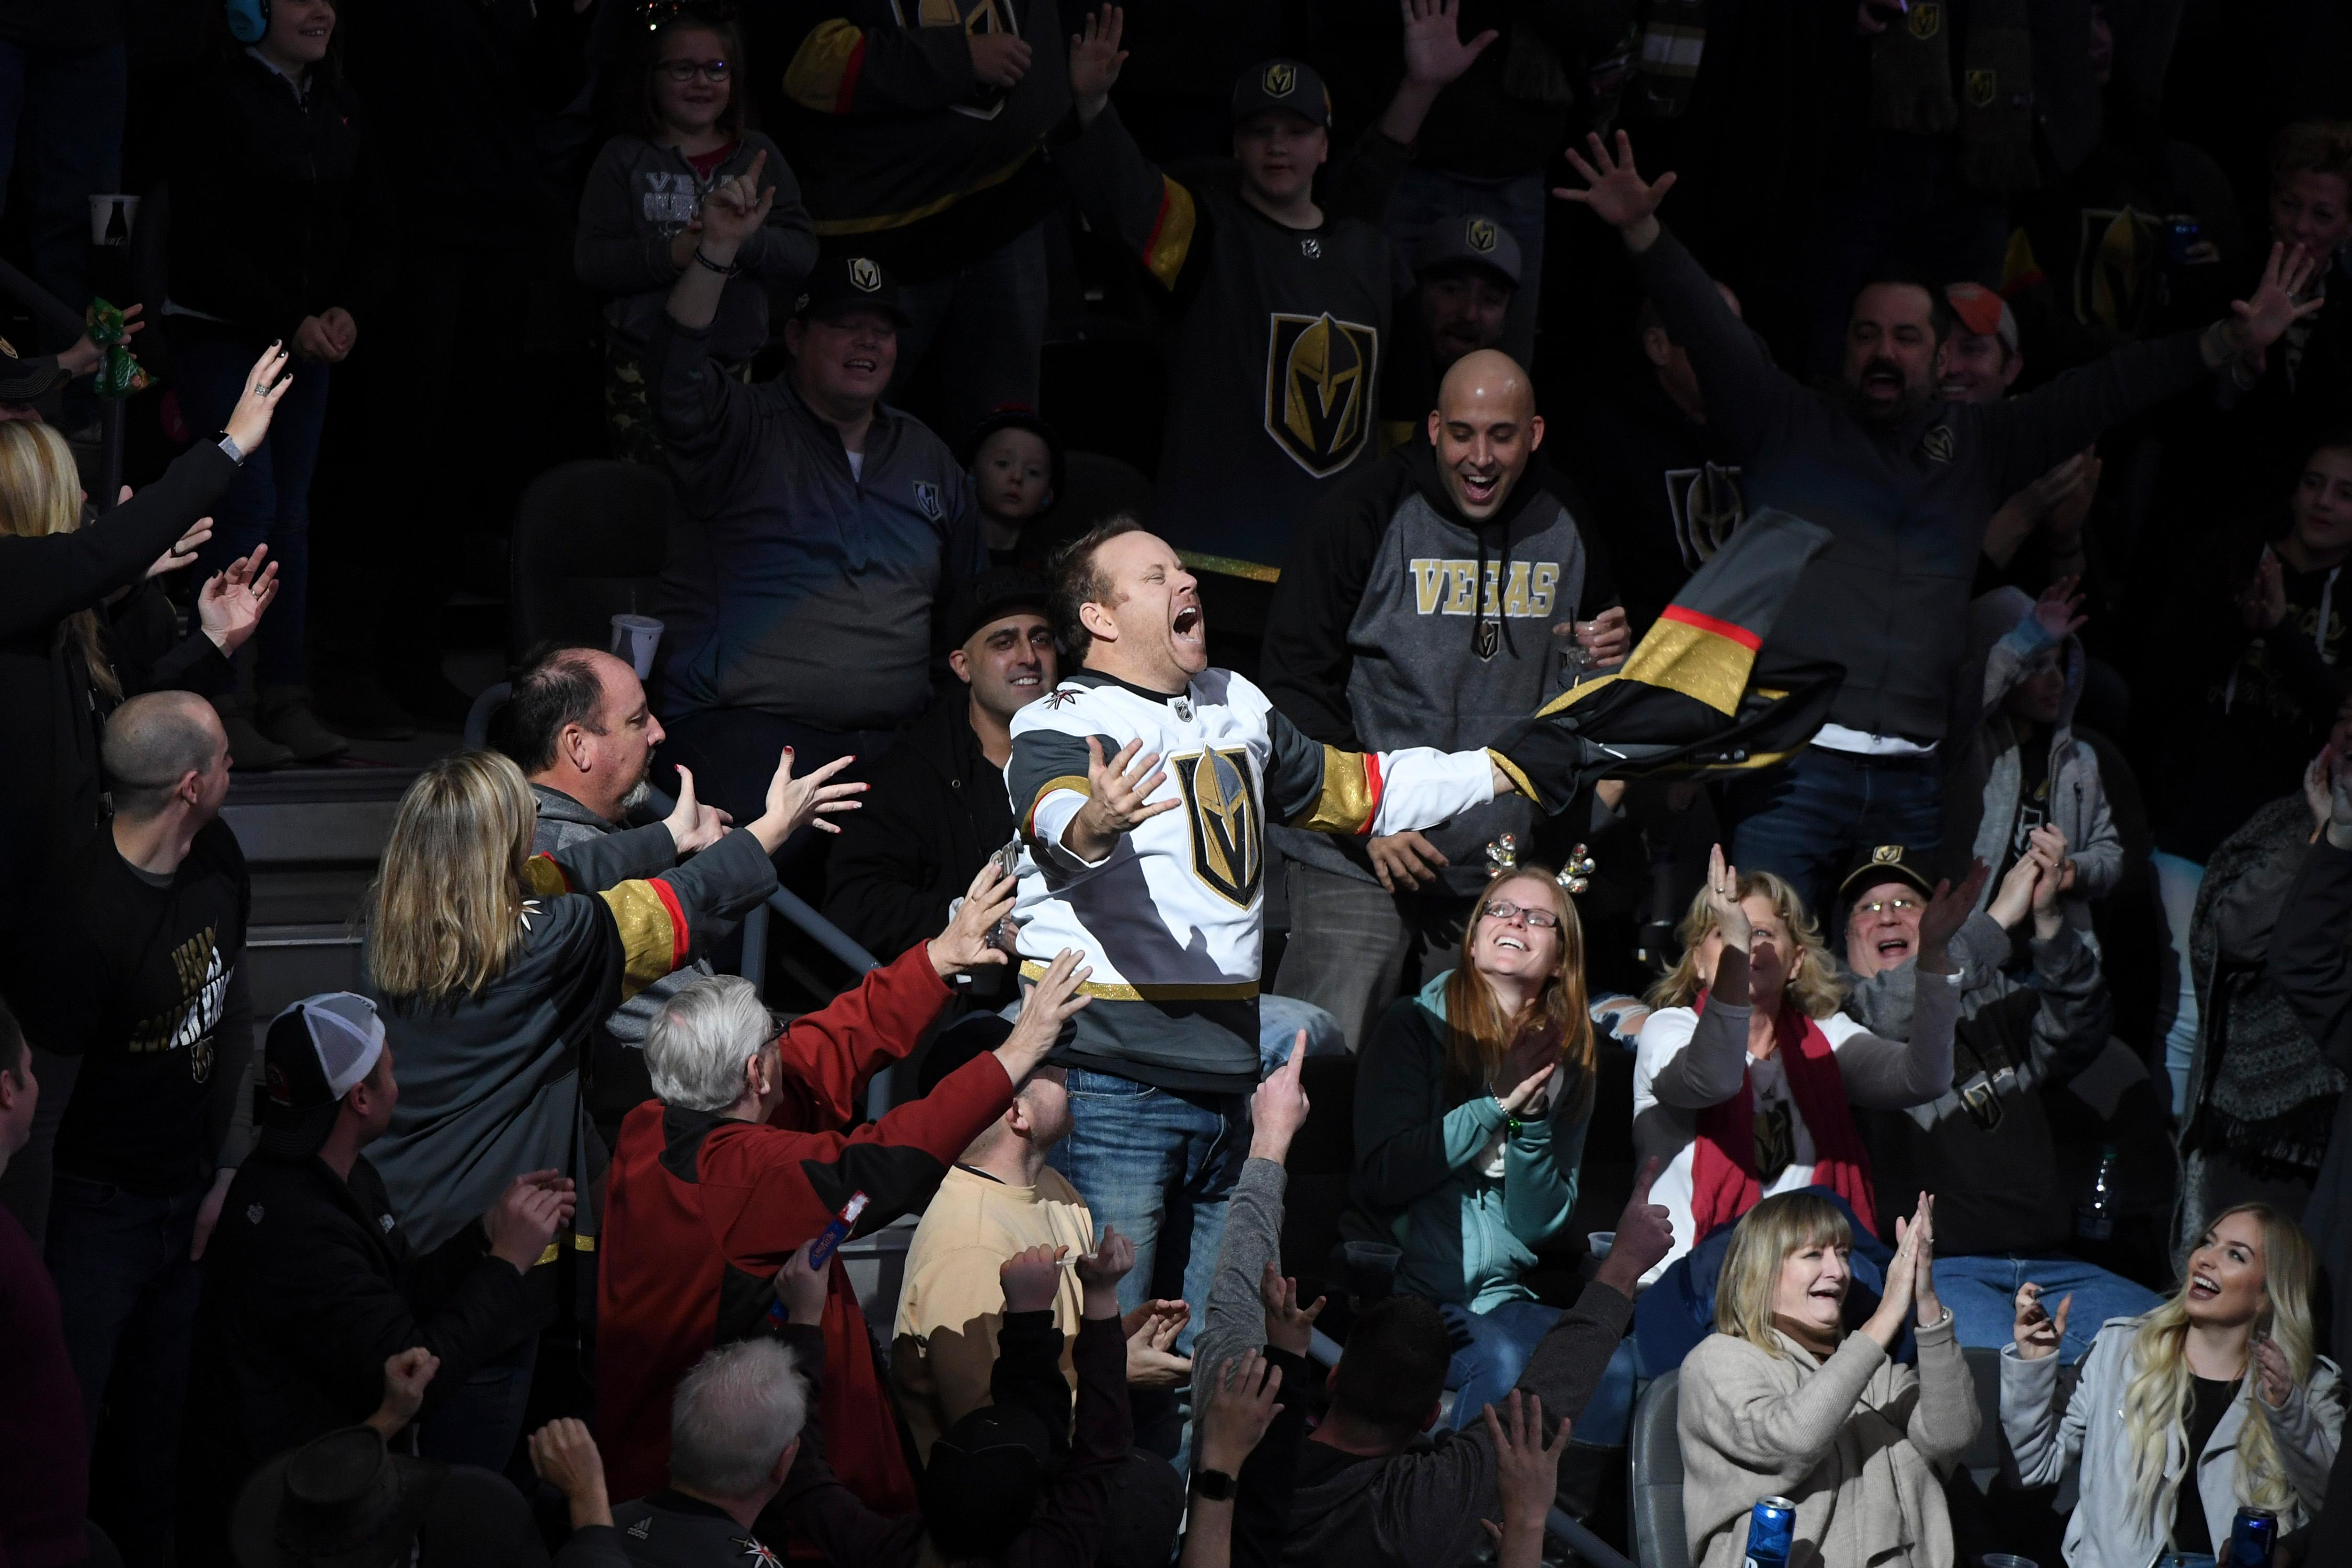 Sports entertainer Cameron Hughes gets the crowd excited as he tosses out jerseys during the Vegas Golden Knights NHL hockey game against the Washington Capitals Saturday, December 23, 2017, at T-Mobile Arena in Las Vegas.  CREDIT: Sam Morris/Las Vegas News Bureau